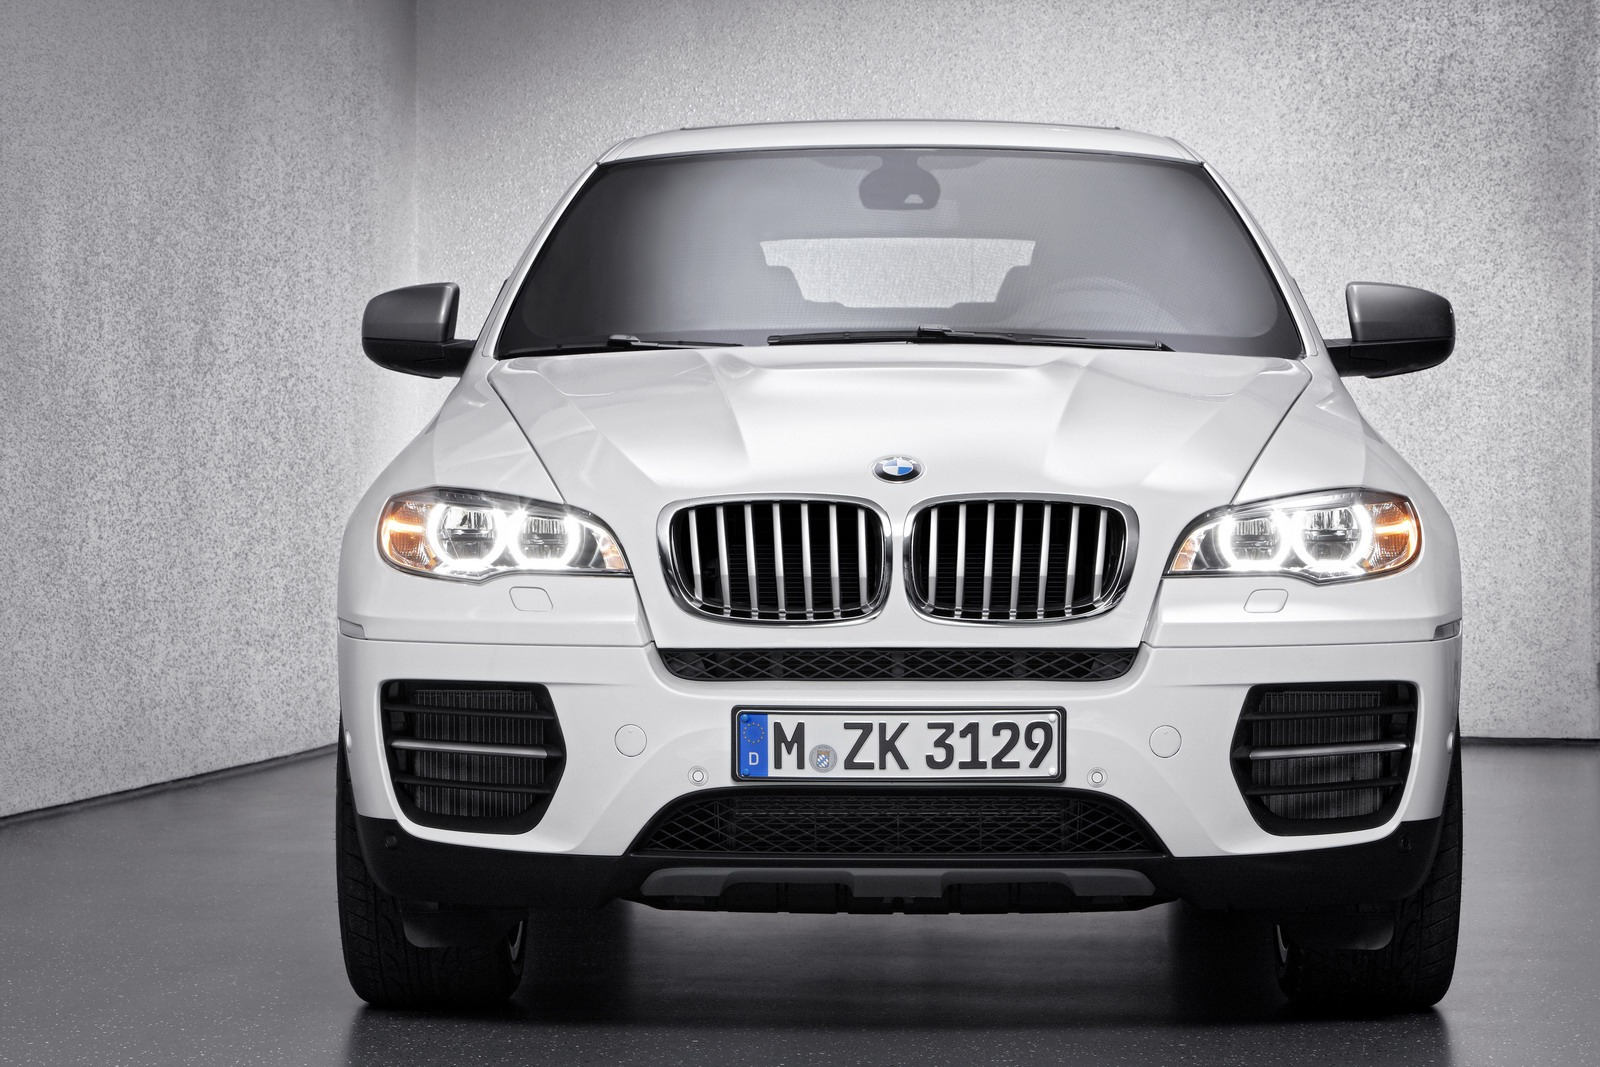 Bmw X6 M50d Super Diesel Sav Unveiled Autoevolution